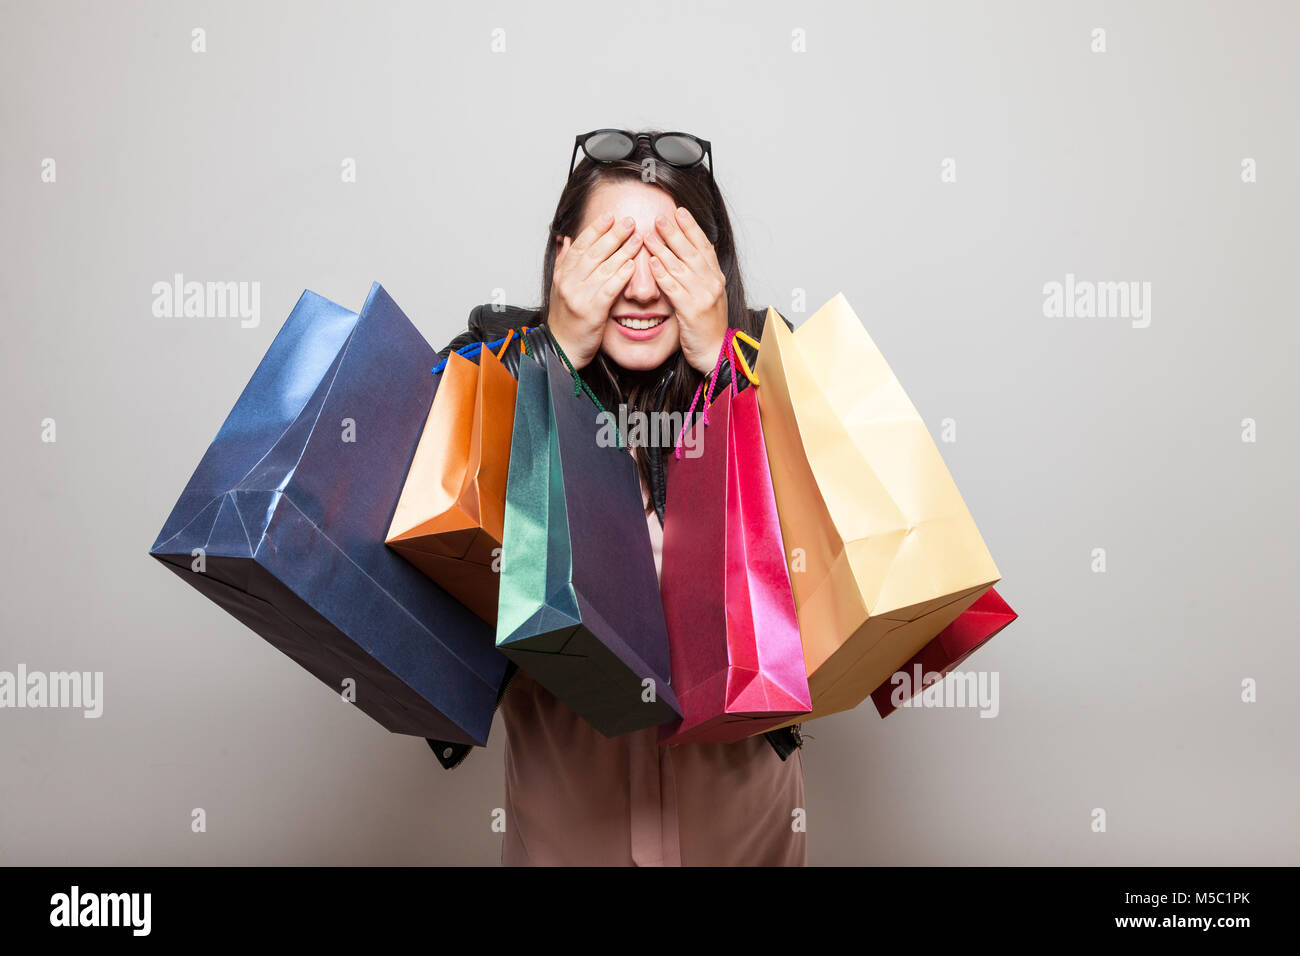 Beautiful smiling caucasian girl closes eyes and guessing what is in the gift bags she holds - Stock Image